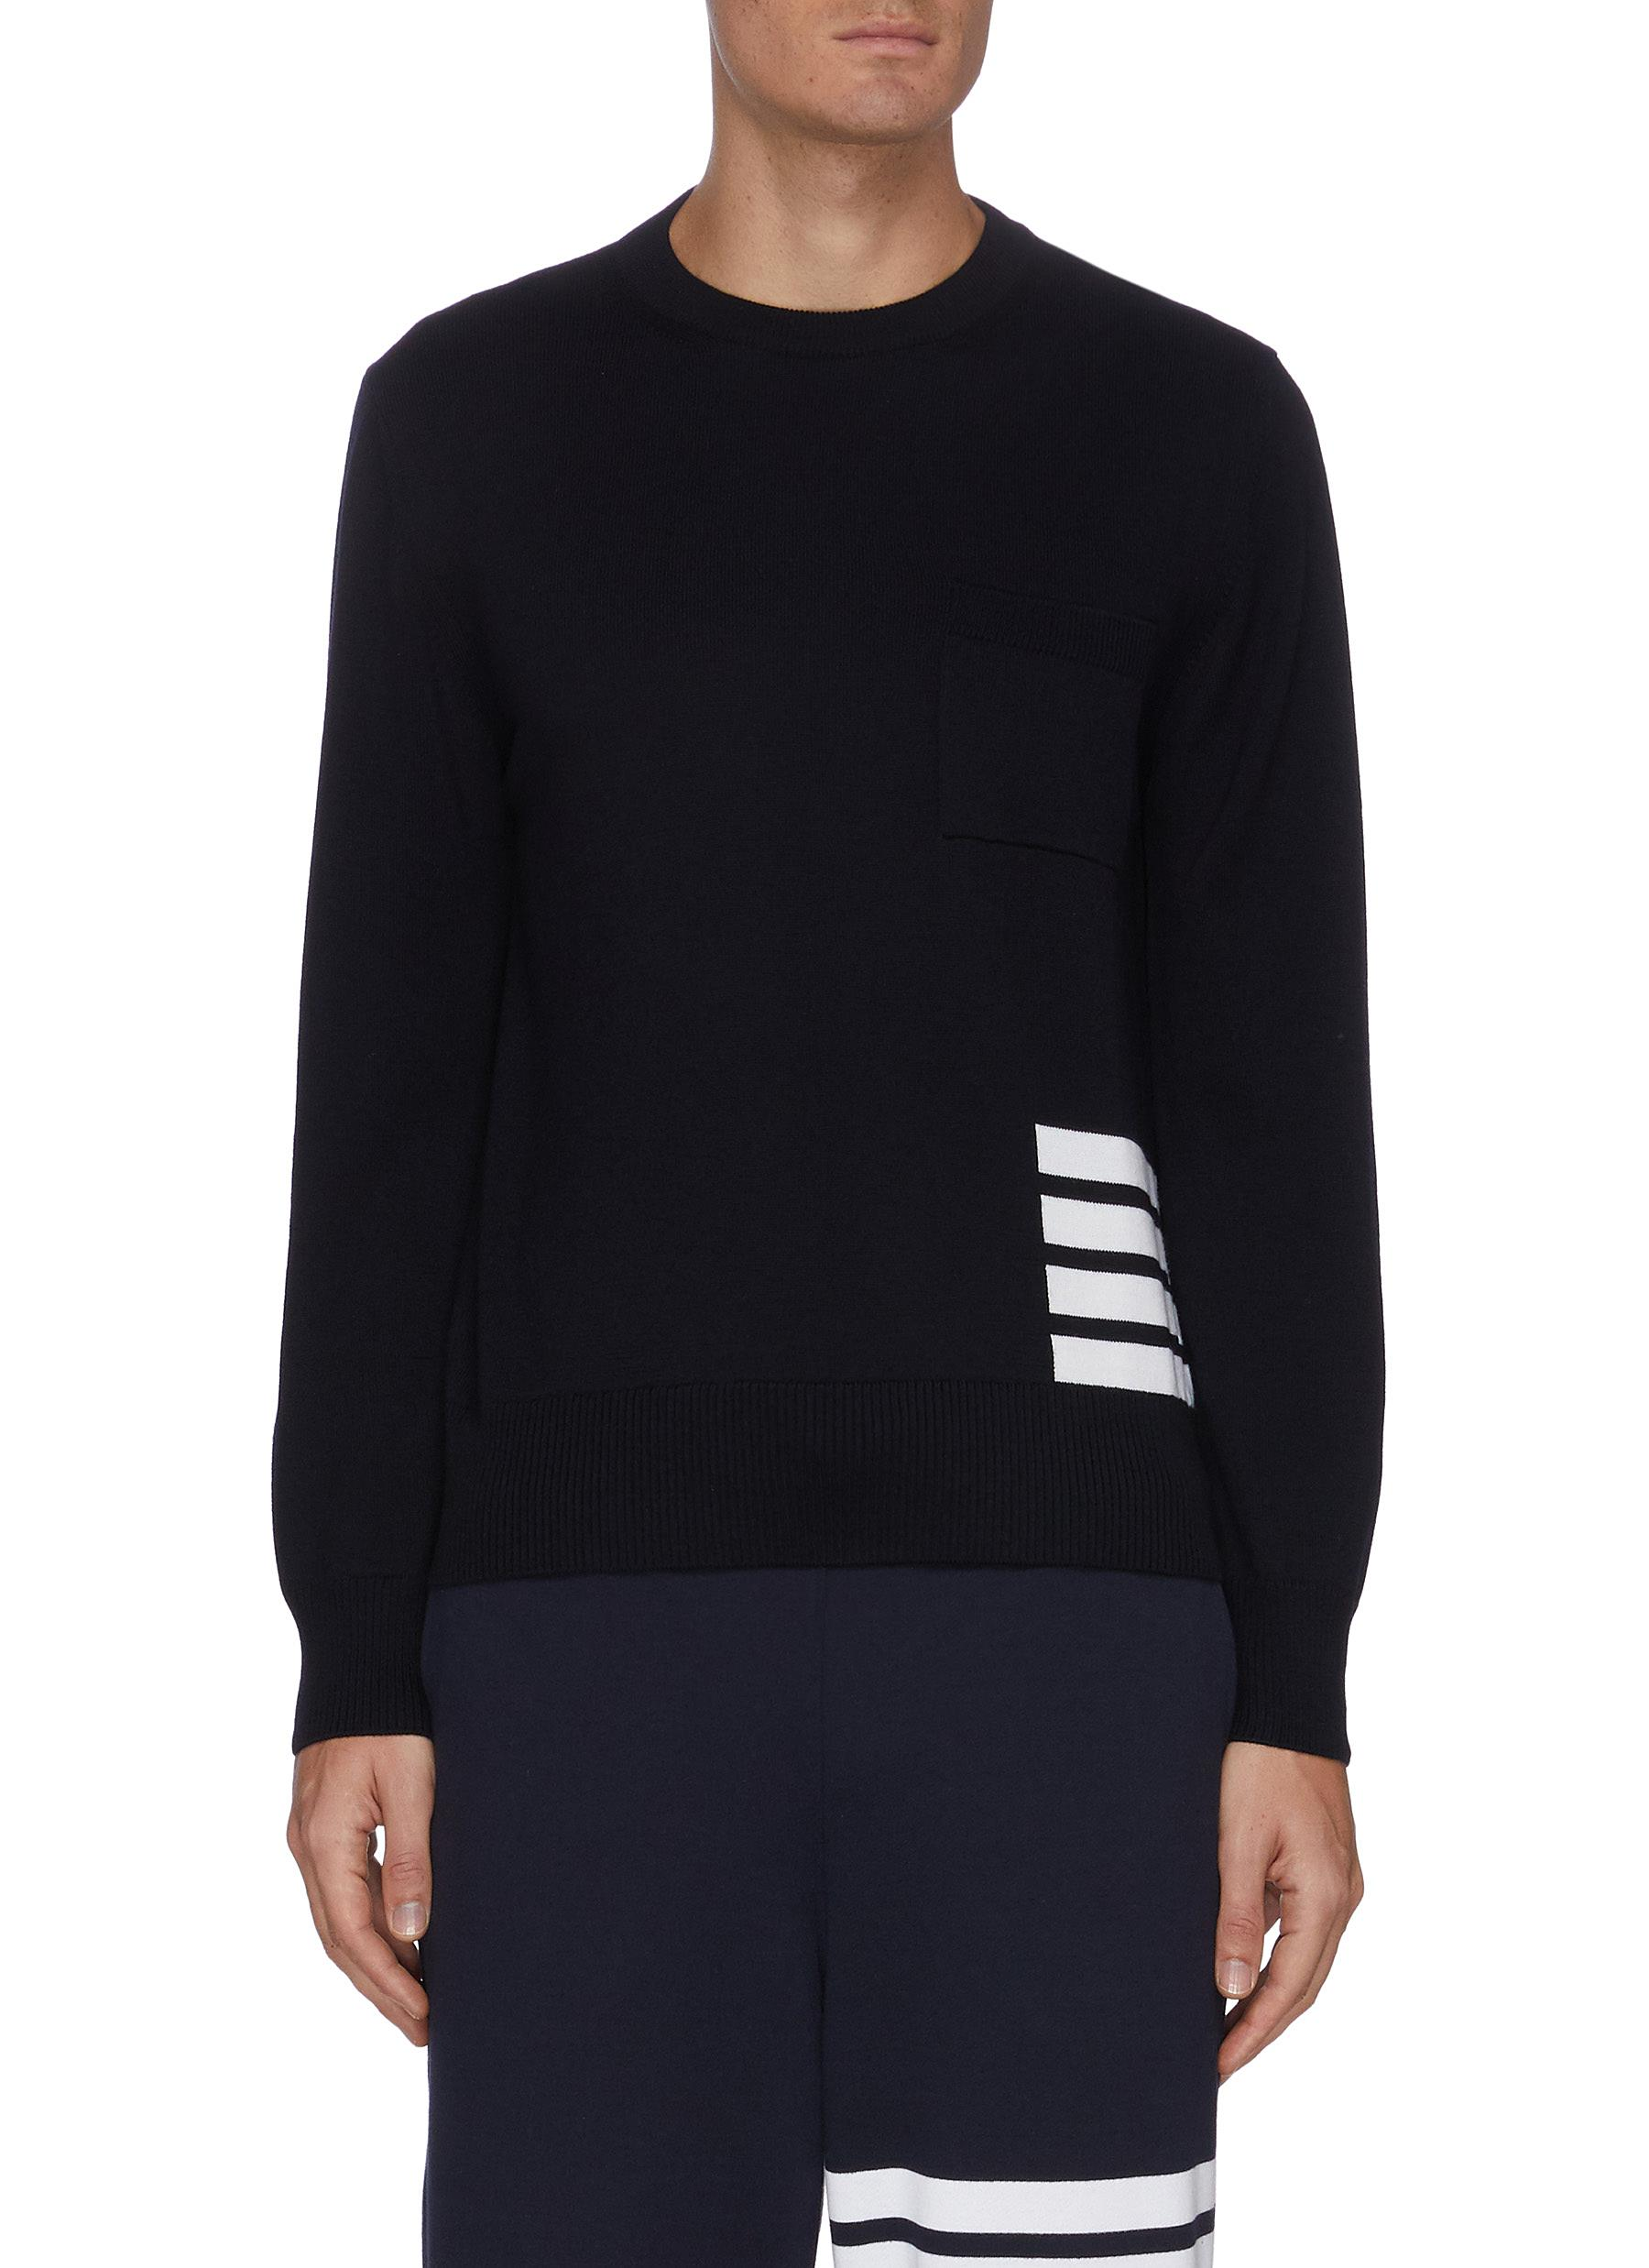 Thom Browne Wools FOUR BAR STRIPE MERINO WOOL SWEATER